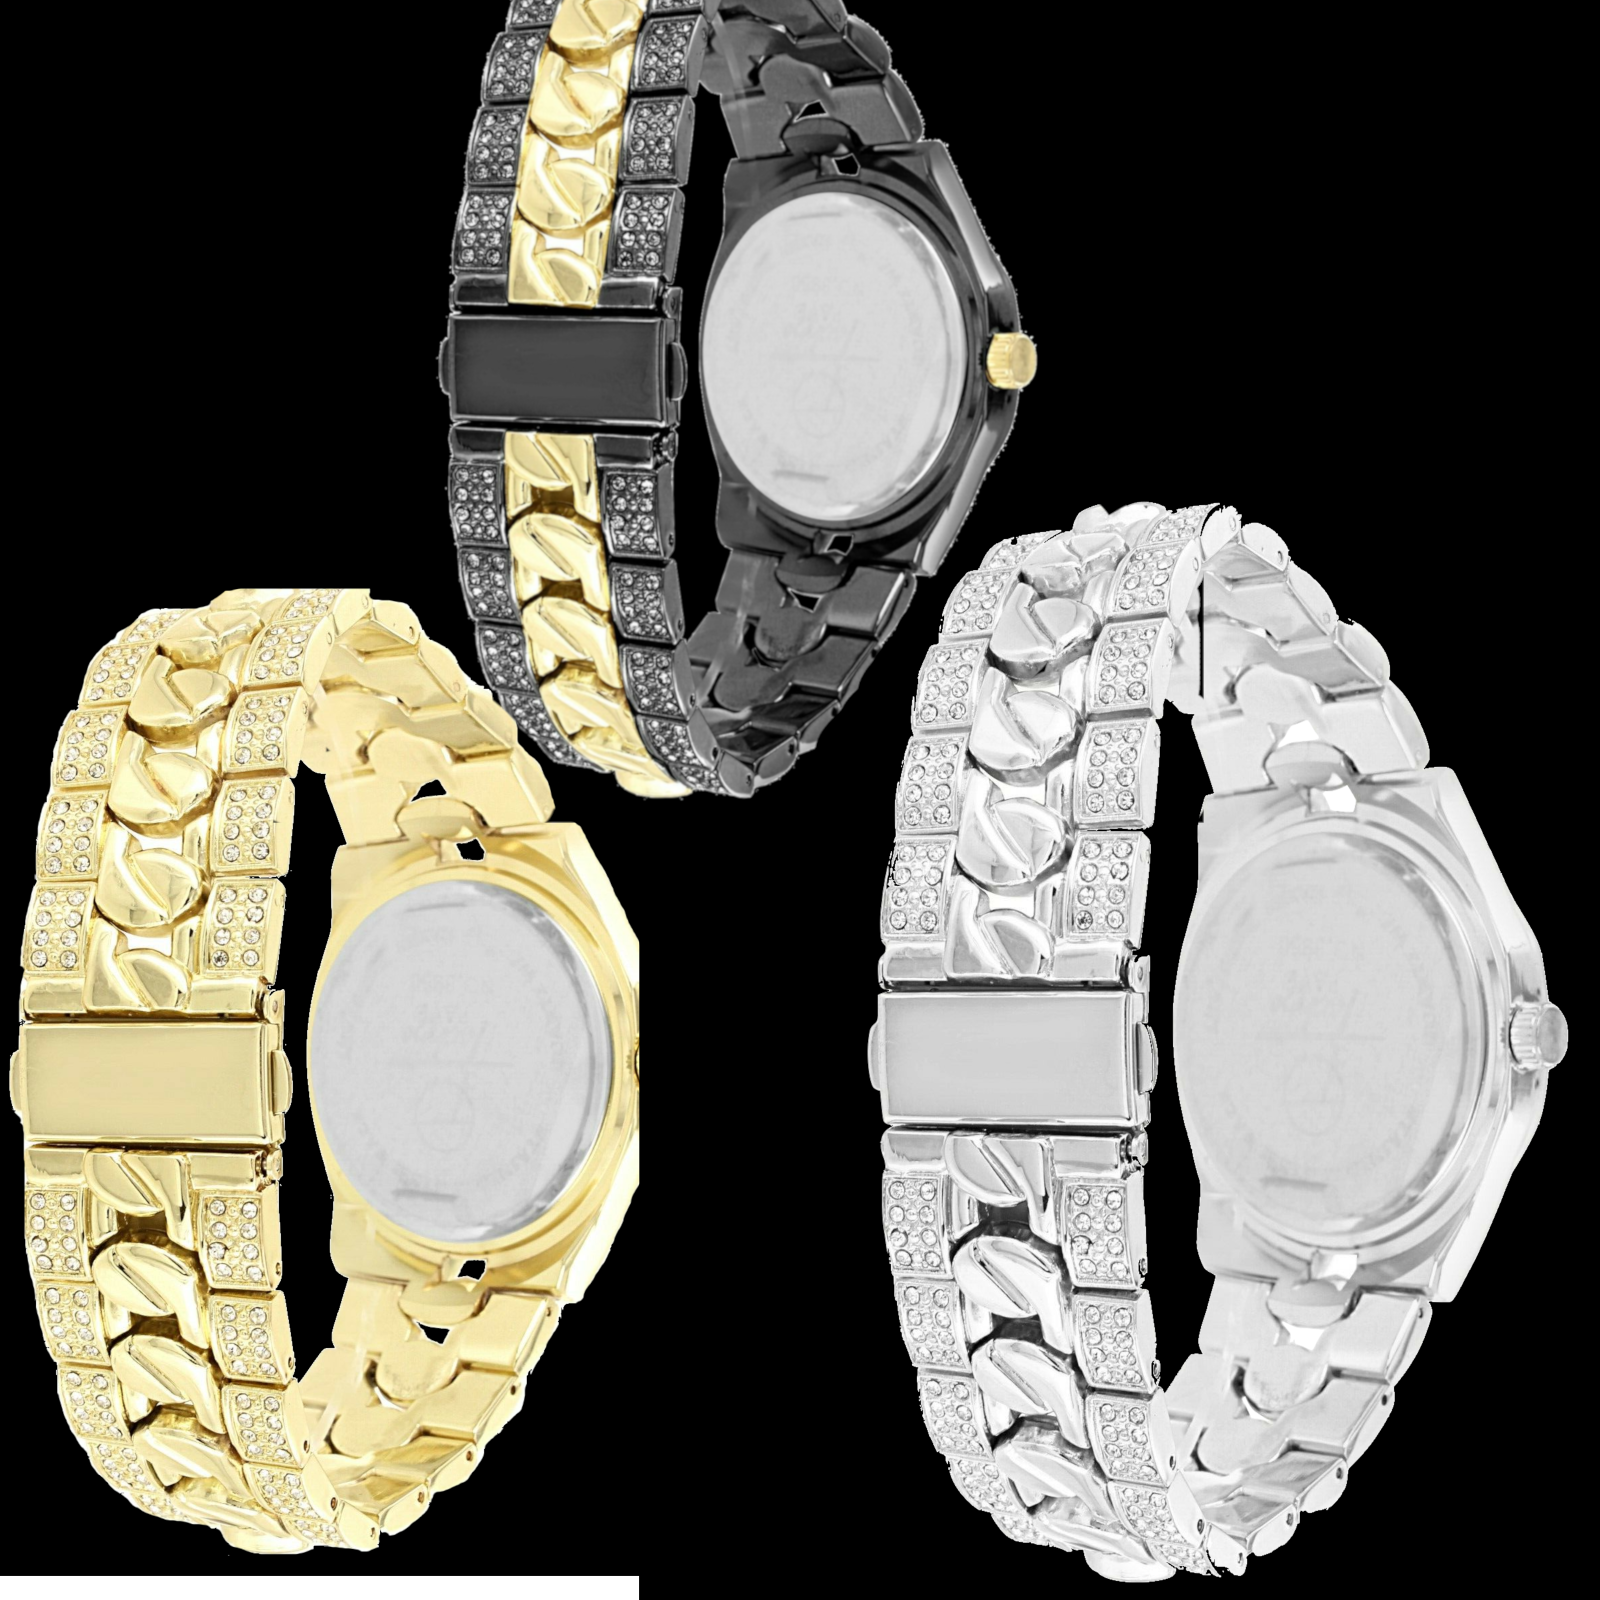 Blinged Out Men's 40mm Gold Watch with Iced Out Bezel Simulated Lab Diamonds